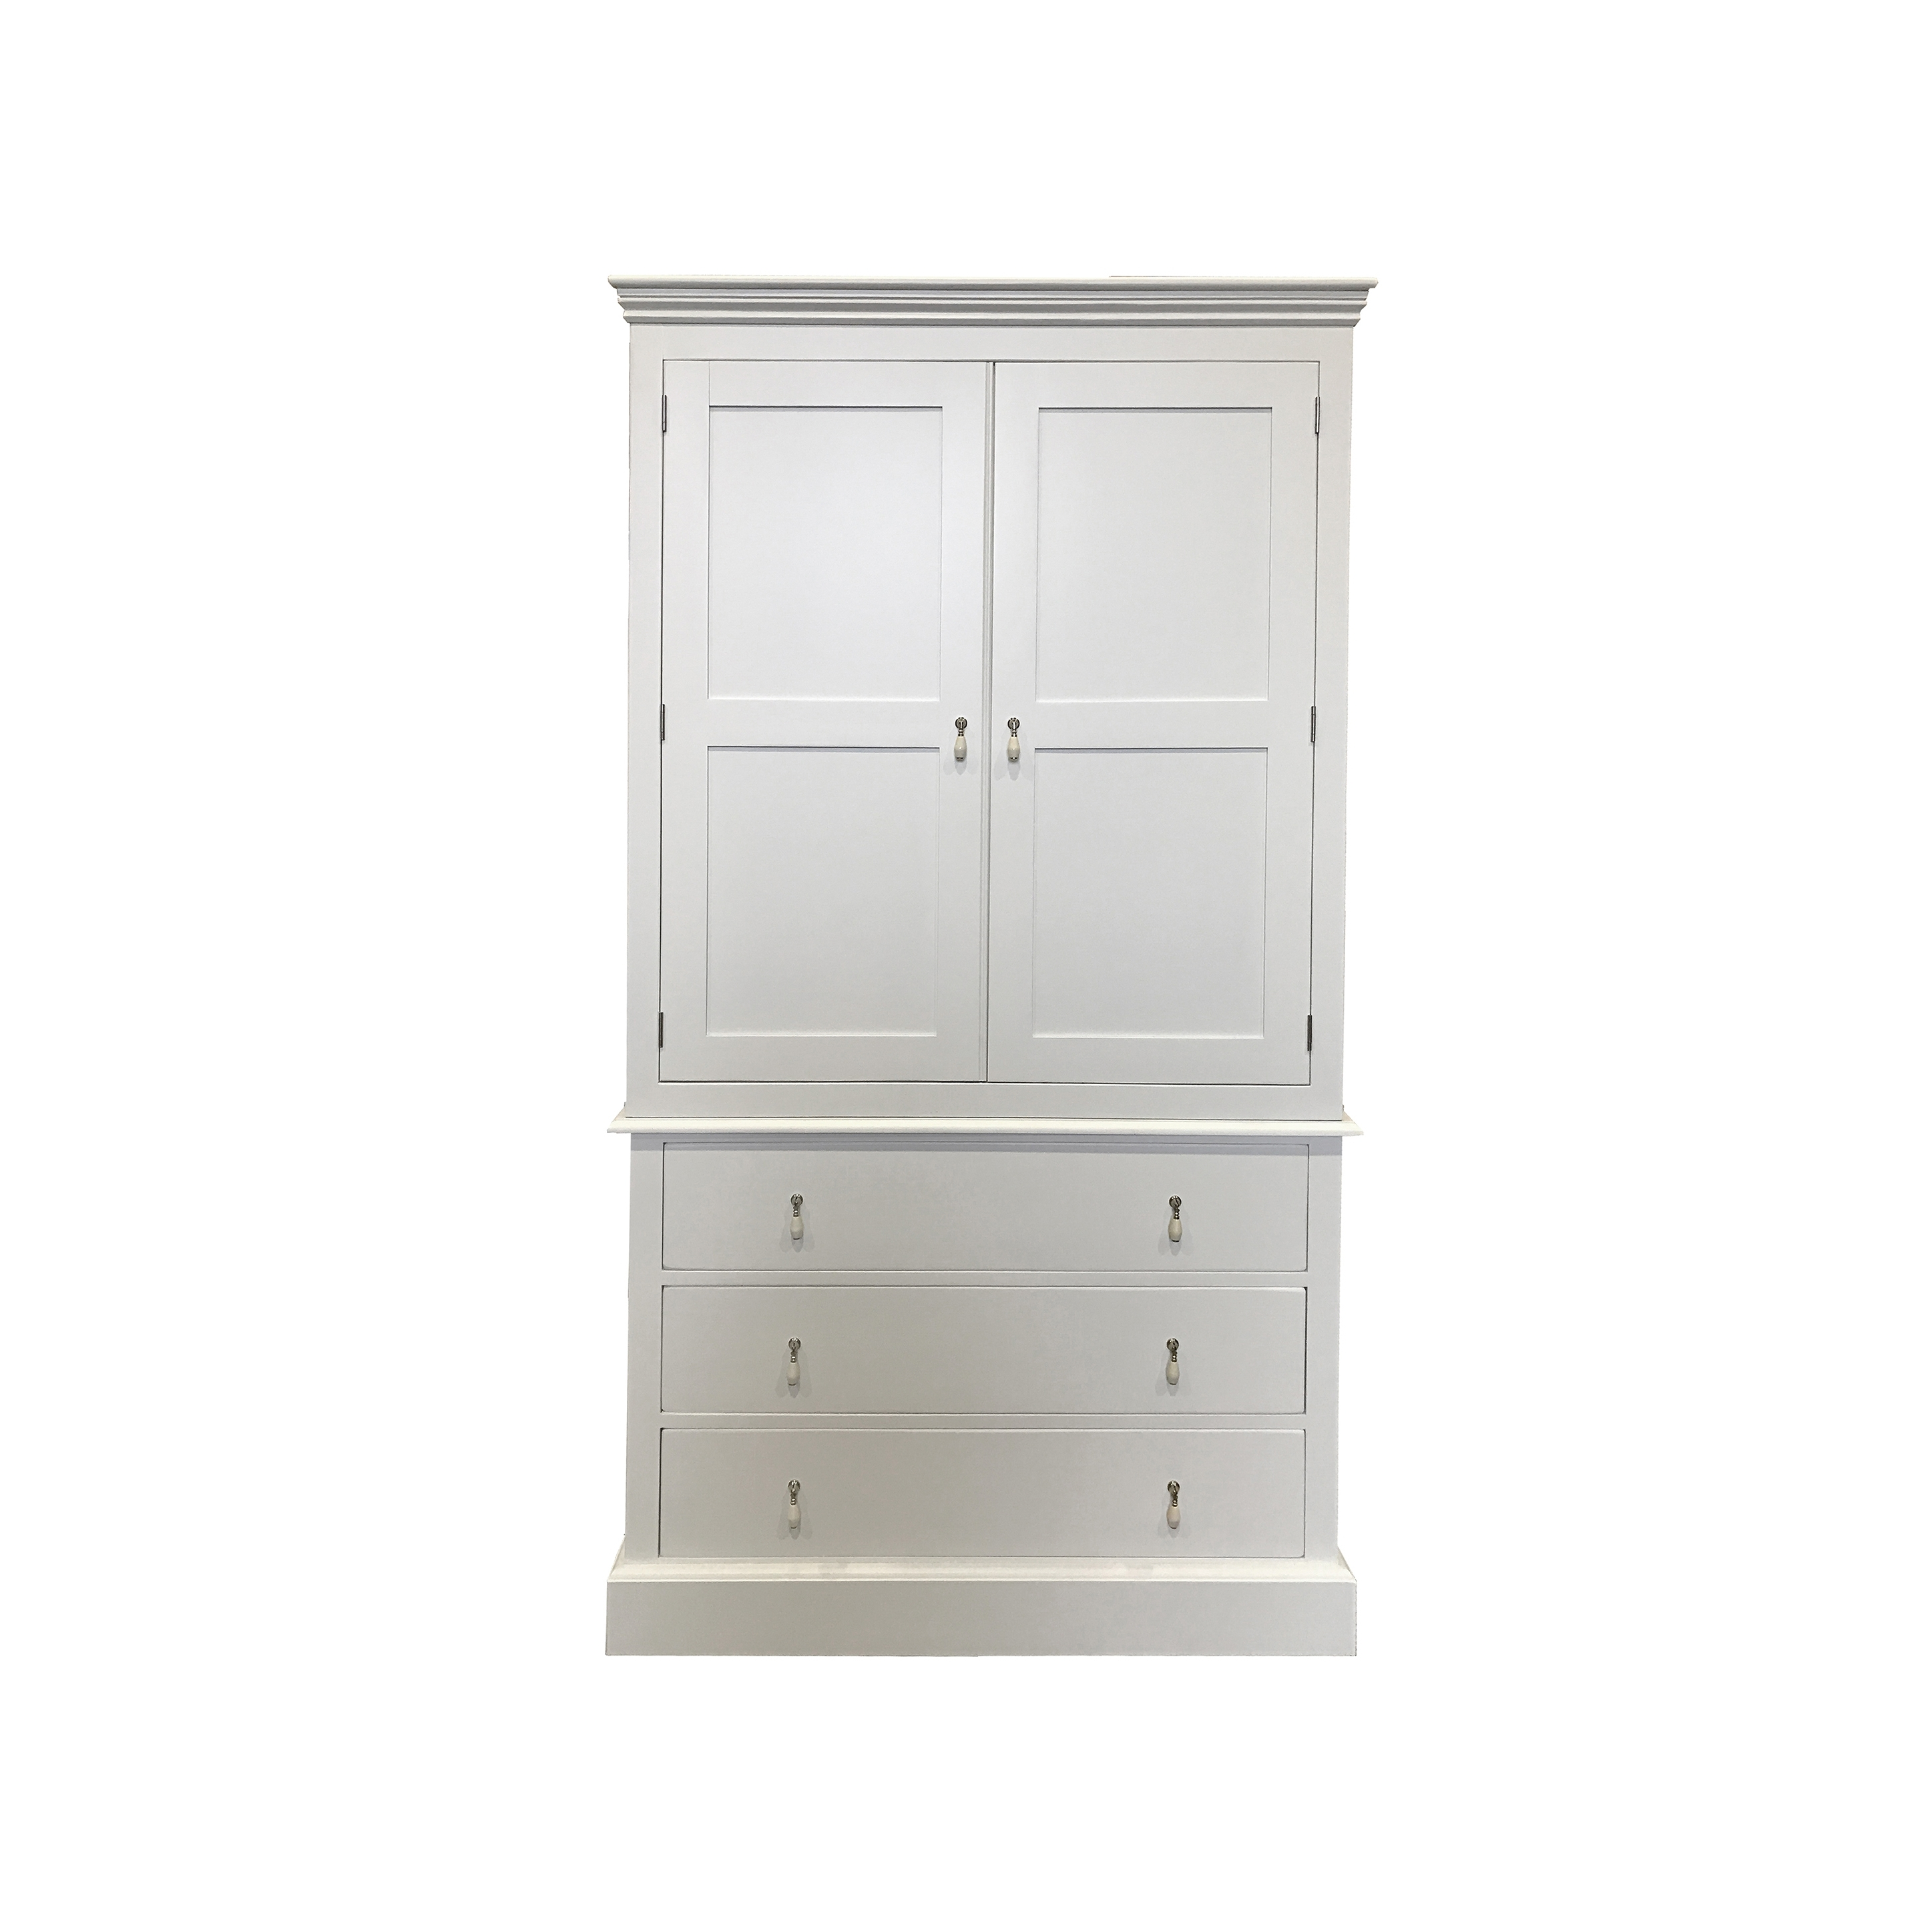 Trendy Chest Of Drawers Wardrobes Combination Intended For 3 Drawer Double Combination Wardrobe – Wimborne White – Kensington (View 13 of 15)